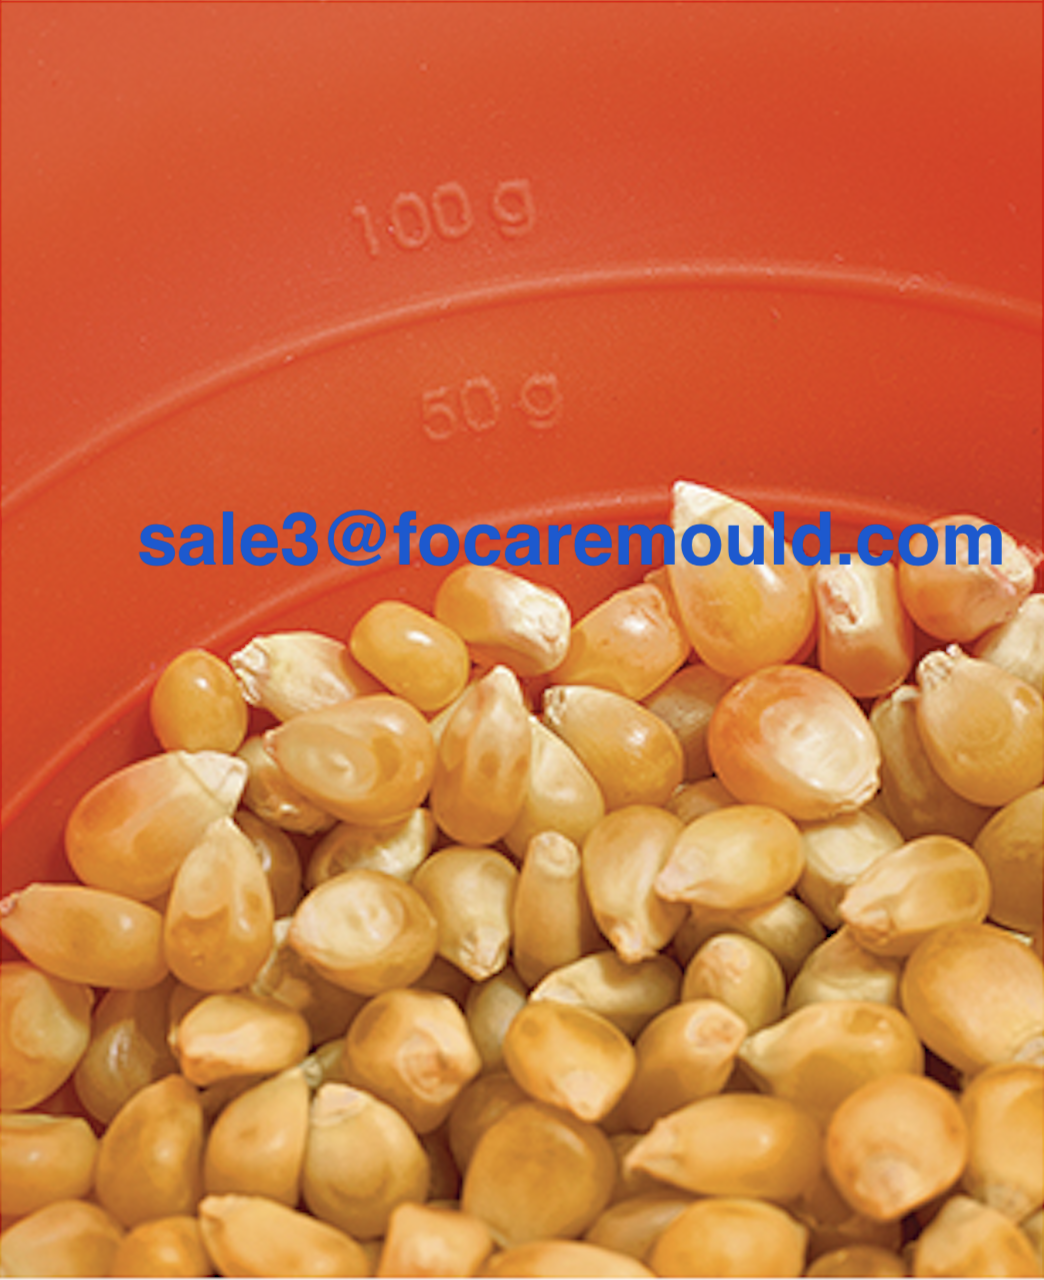 High quality Two-color popcorn bowl Quotes,China Two-color popcorn bowl Factory,Two-color popcorn bowl Purchasing